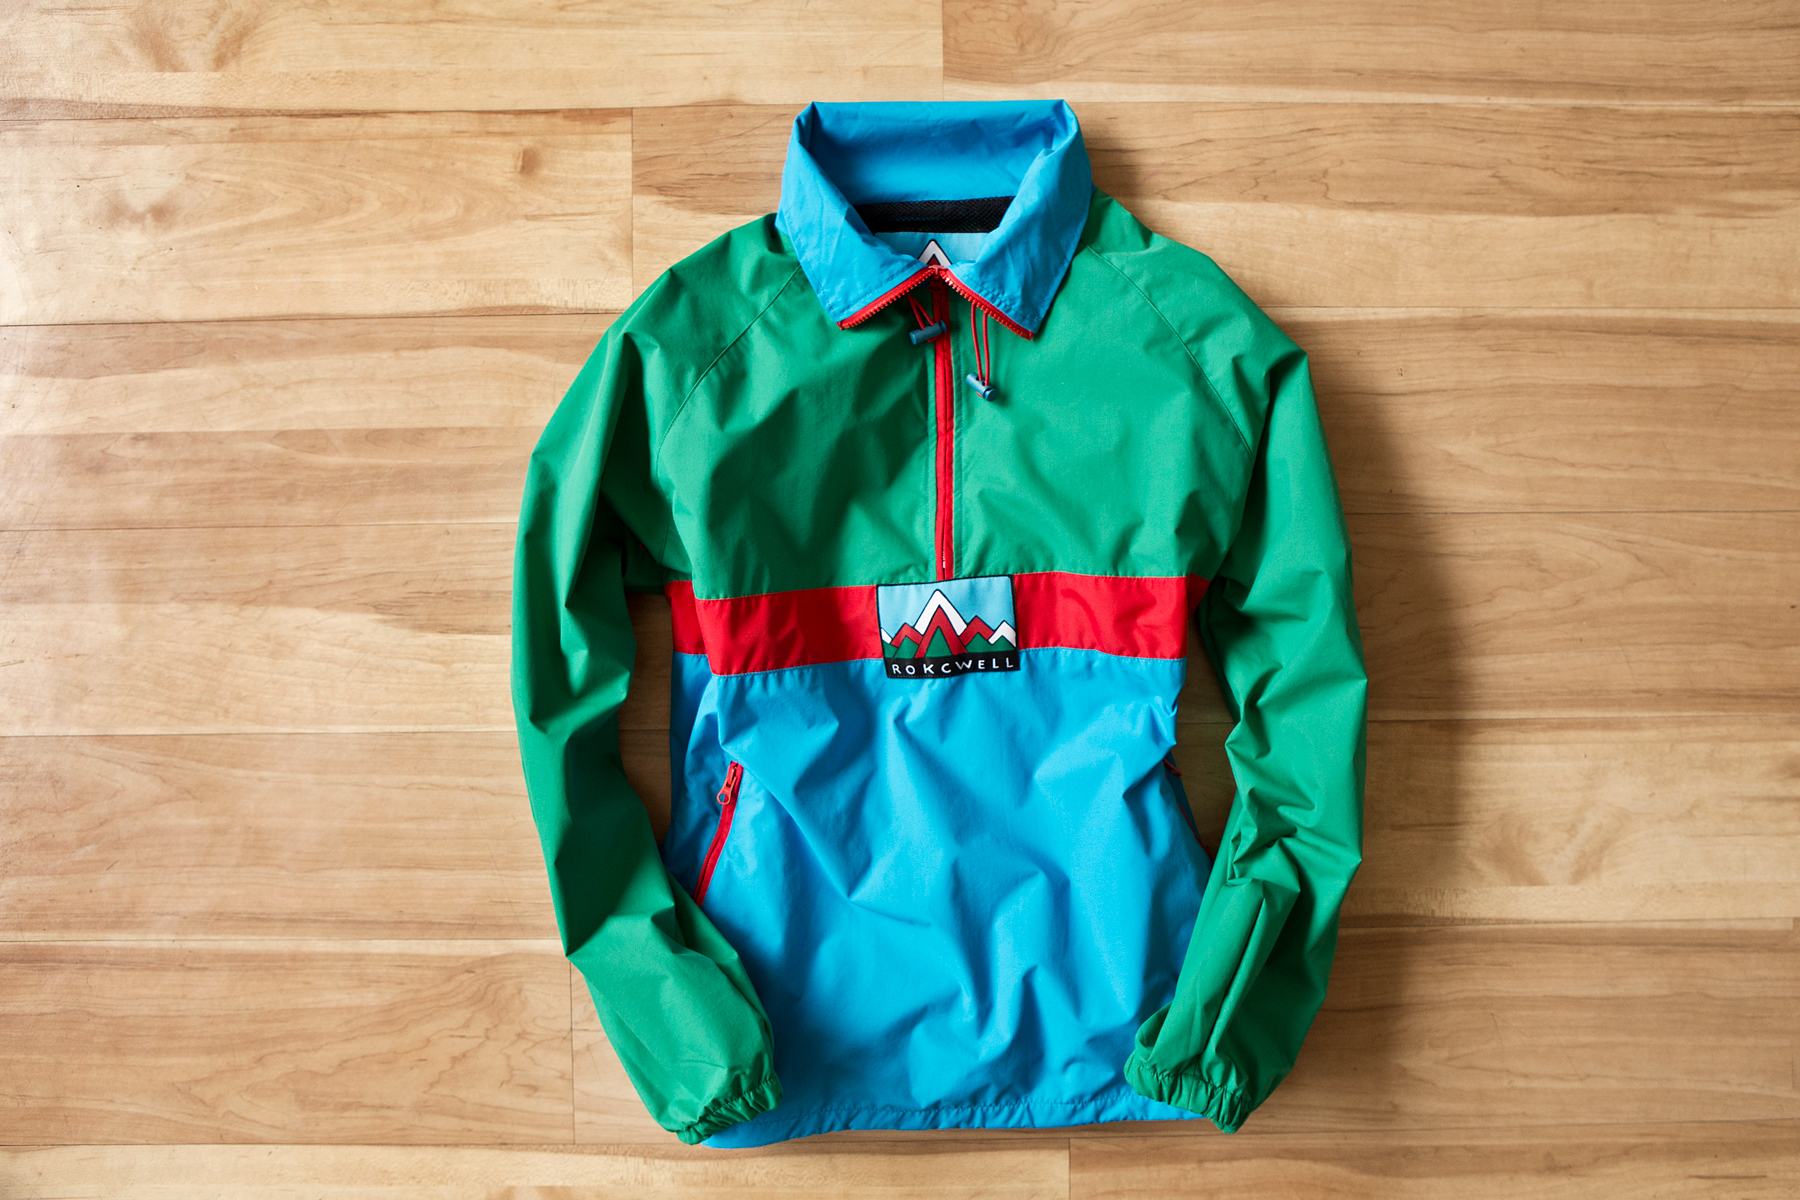 rockwell by parra 2014 spring summer nylon windbreaker